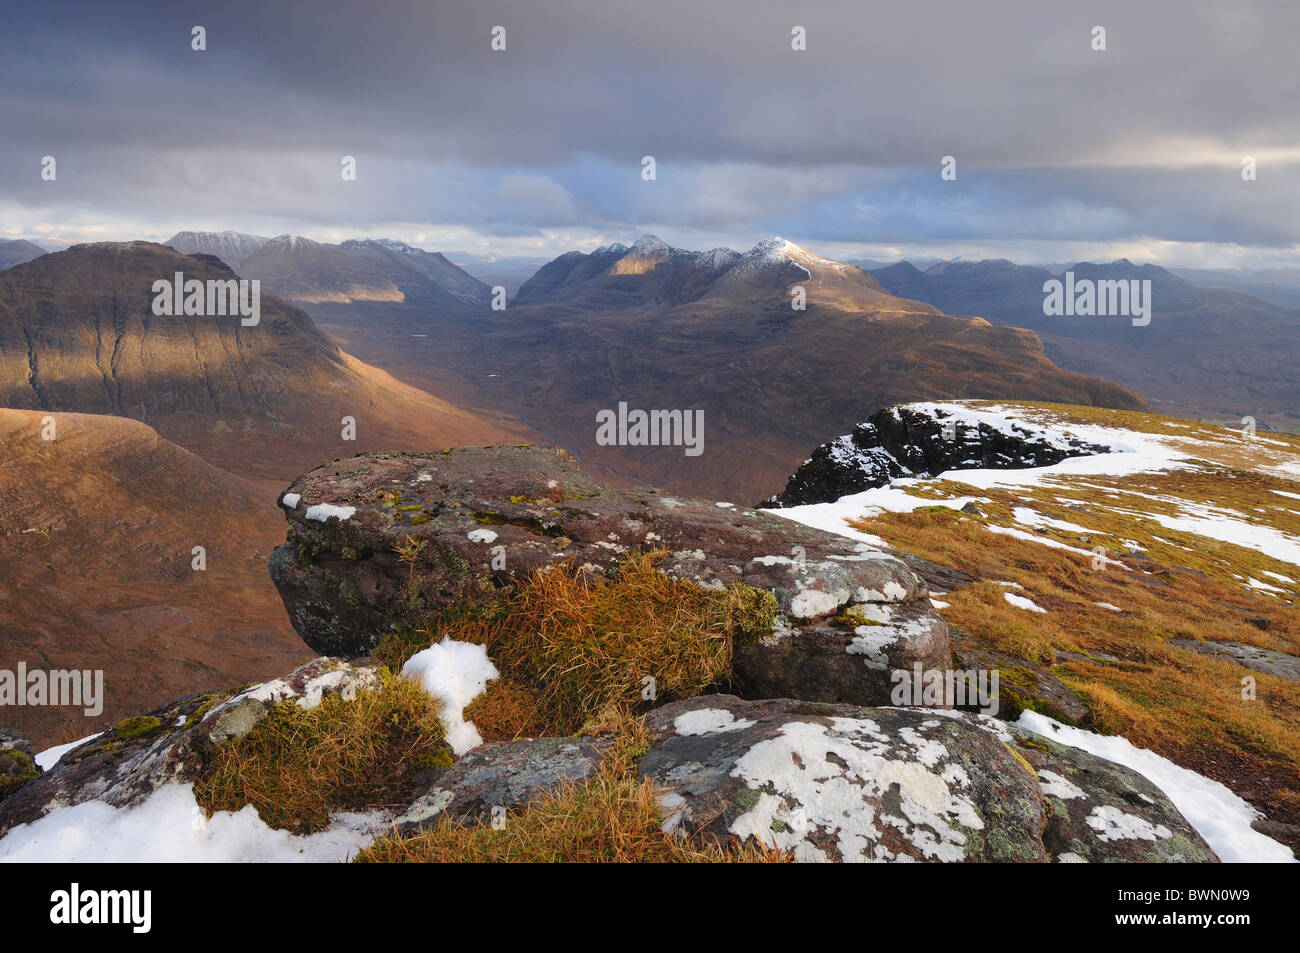 View towards Liathach and Beinn Dearg from Tom Na Gruagaich on Beinn Alligin, Torridon, Wester Ross, Scottish Highlands - Stock Image